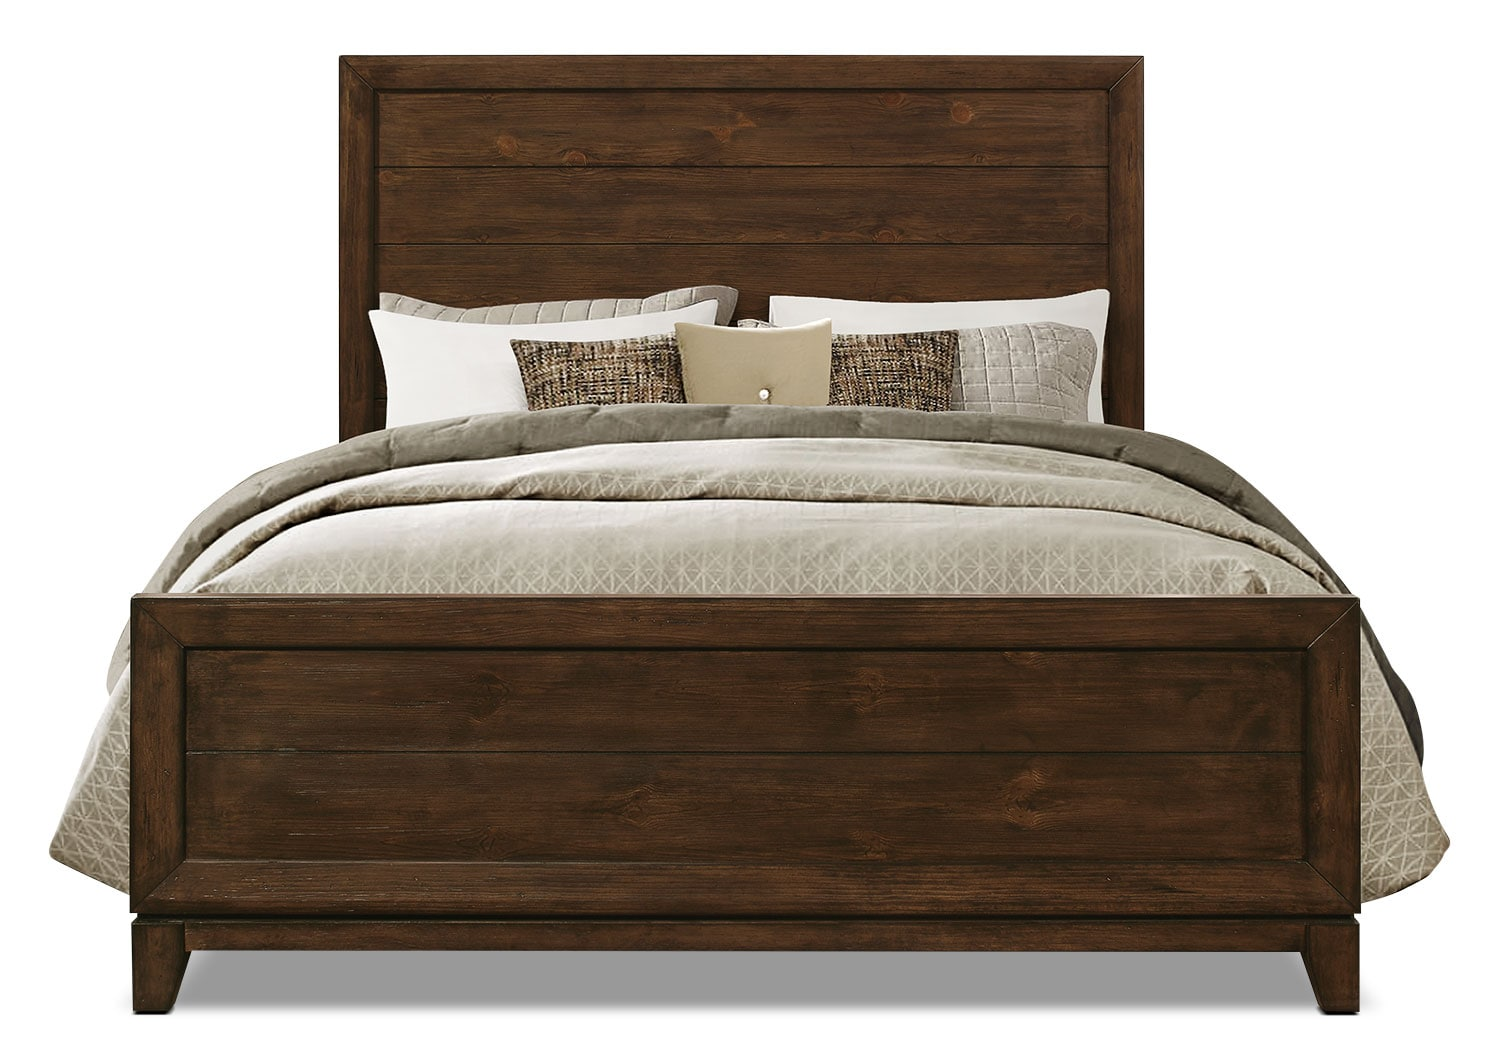 Zoom Room Bed Reviews Tacoma Queen Bed The Brick